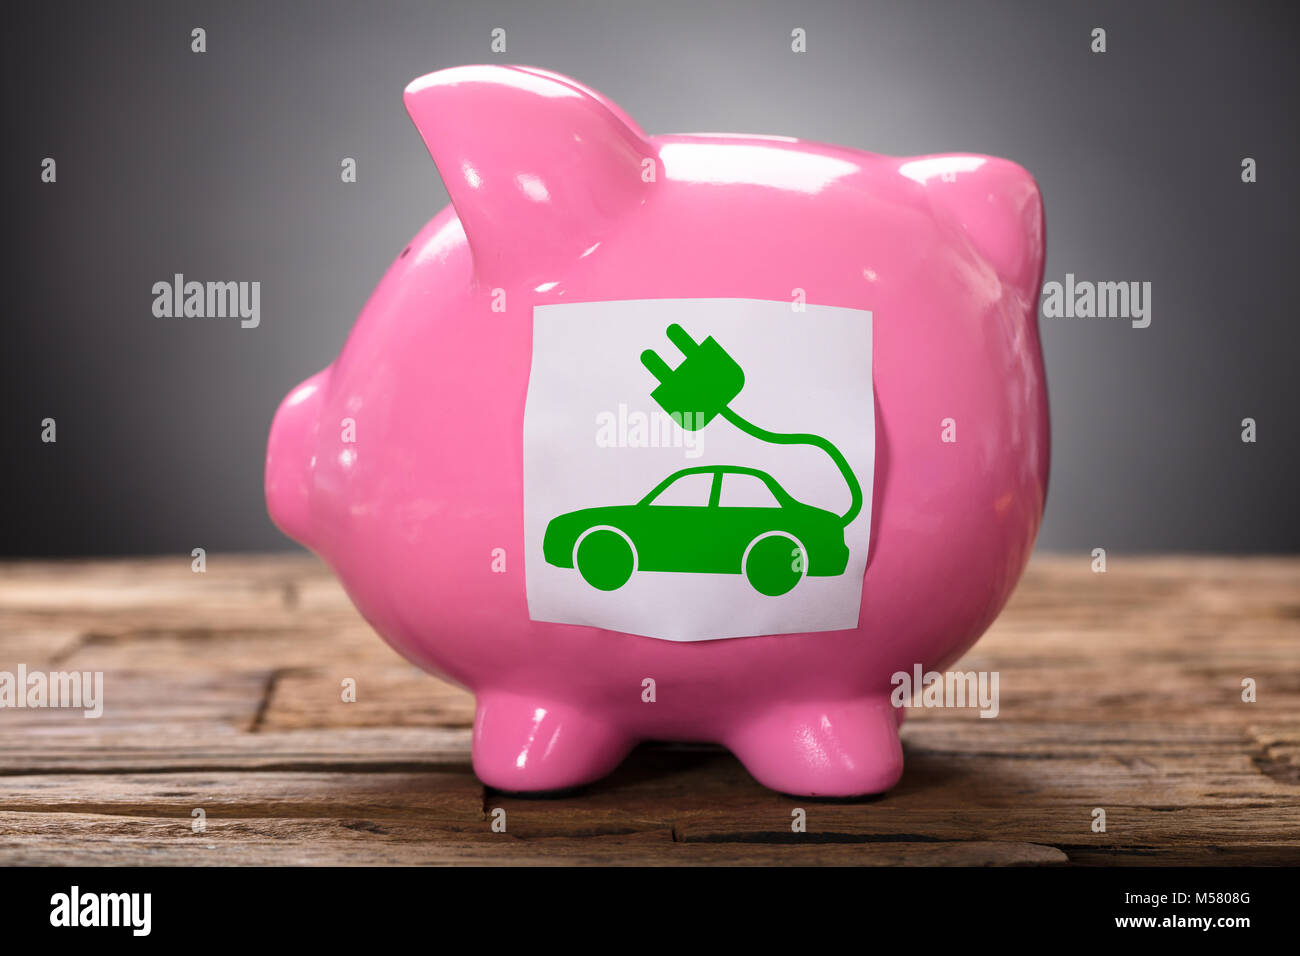 Closeup of green electric car on pink piggybank on wood Stock Photo